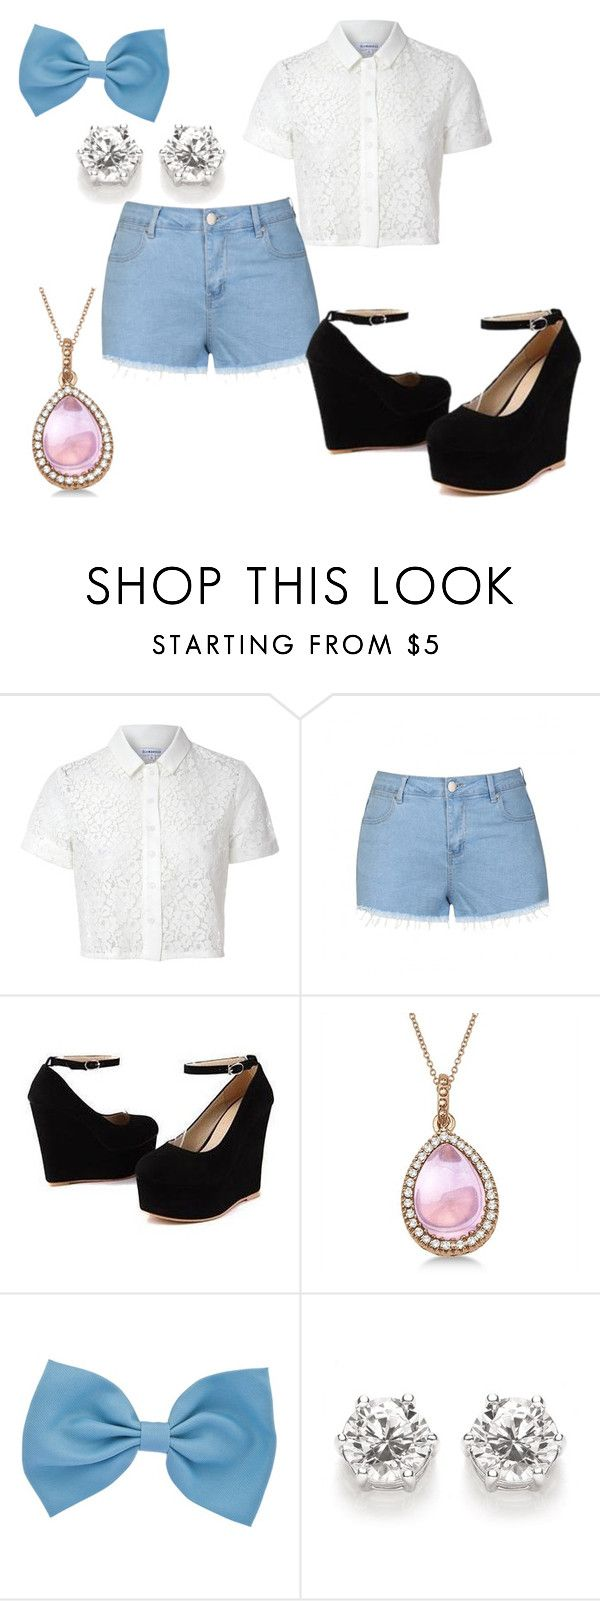 """camila cabello inspired outfit/fifth harmony"" by keiraashlyncliford ❤ liked on Polyvore featuring Glamorous, Ally Fashion, Sidewalk and Allurez"